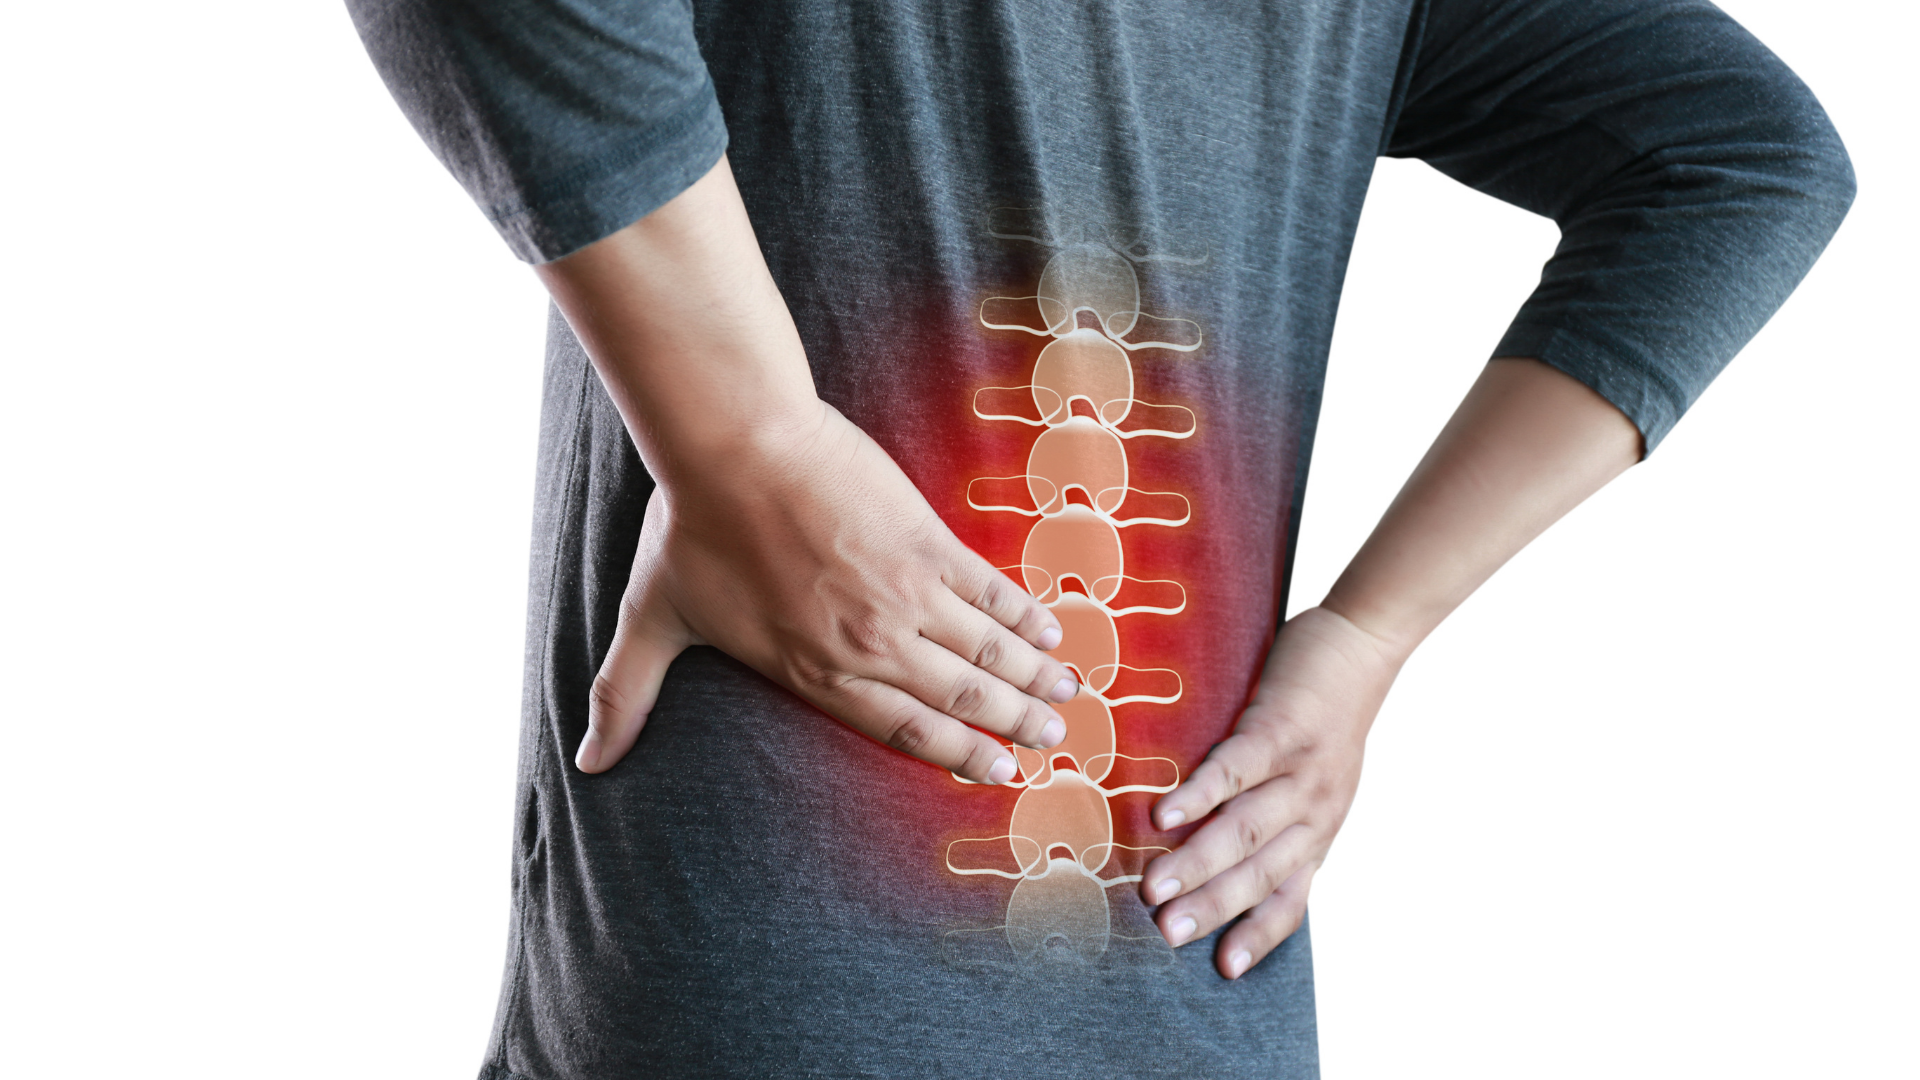 Lower back pain: how to find relief